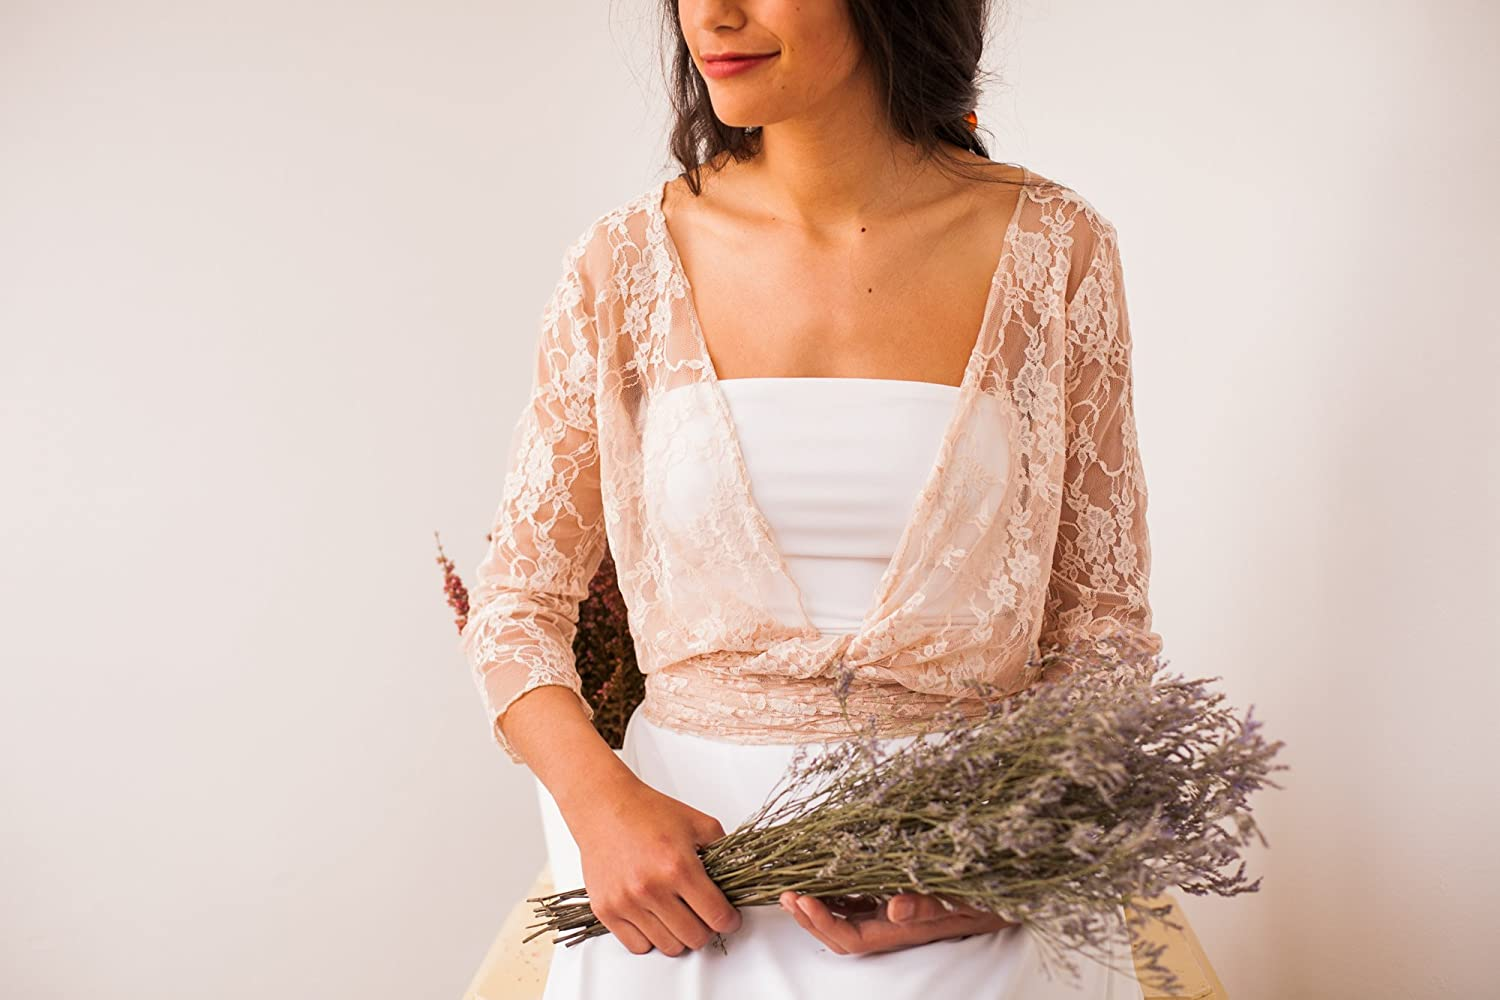 Amazon.com: Champagne lace shrug, champagne lace bolero, light beige wedding top, lace bridal top, champagne lace cover up, light beige lace wrap top: ...